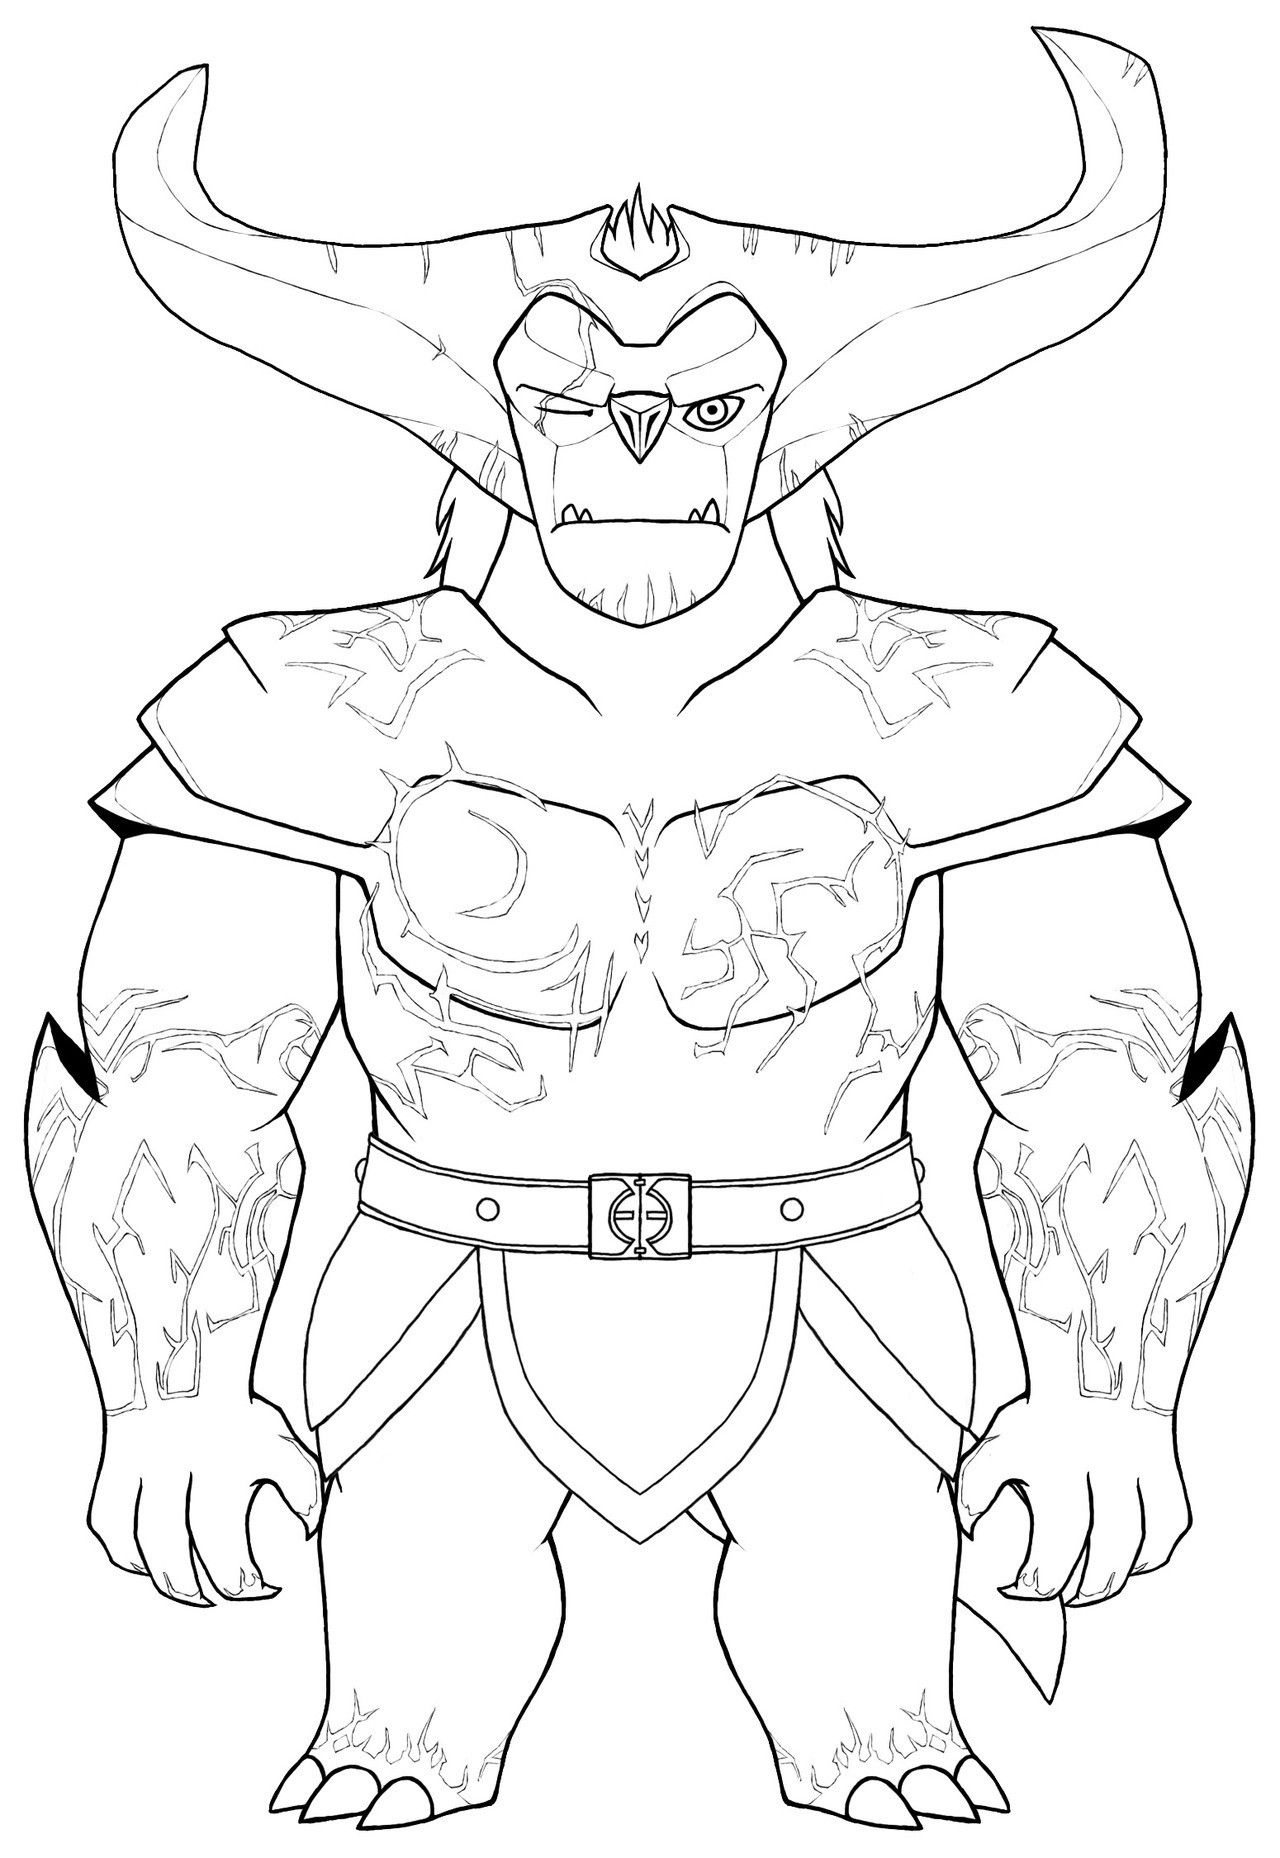 Gunmar Coloring Page Color Crafts Coloring Pages Crafts [ 1858 x 1280 Pixel ]